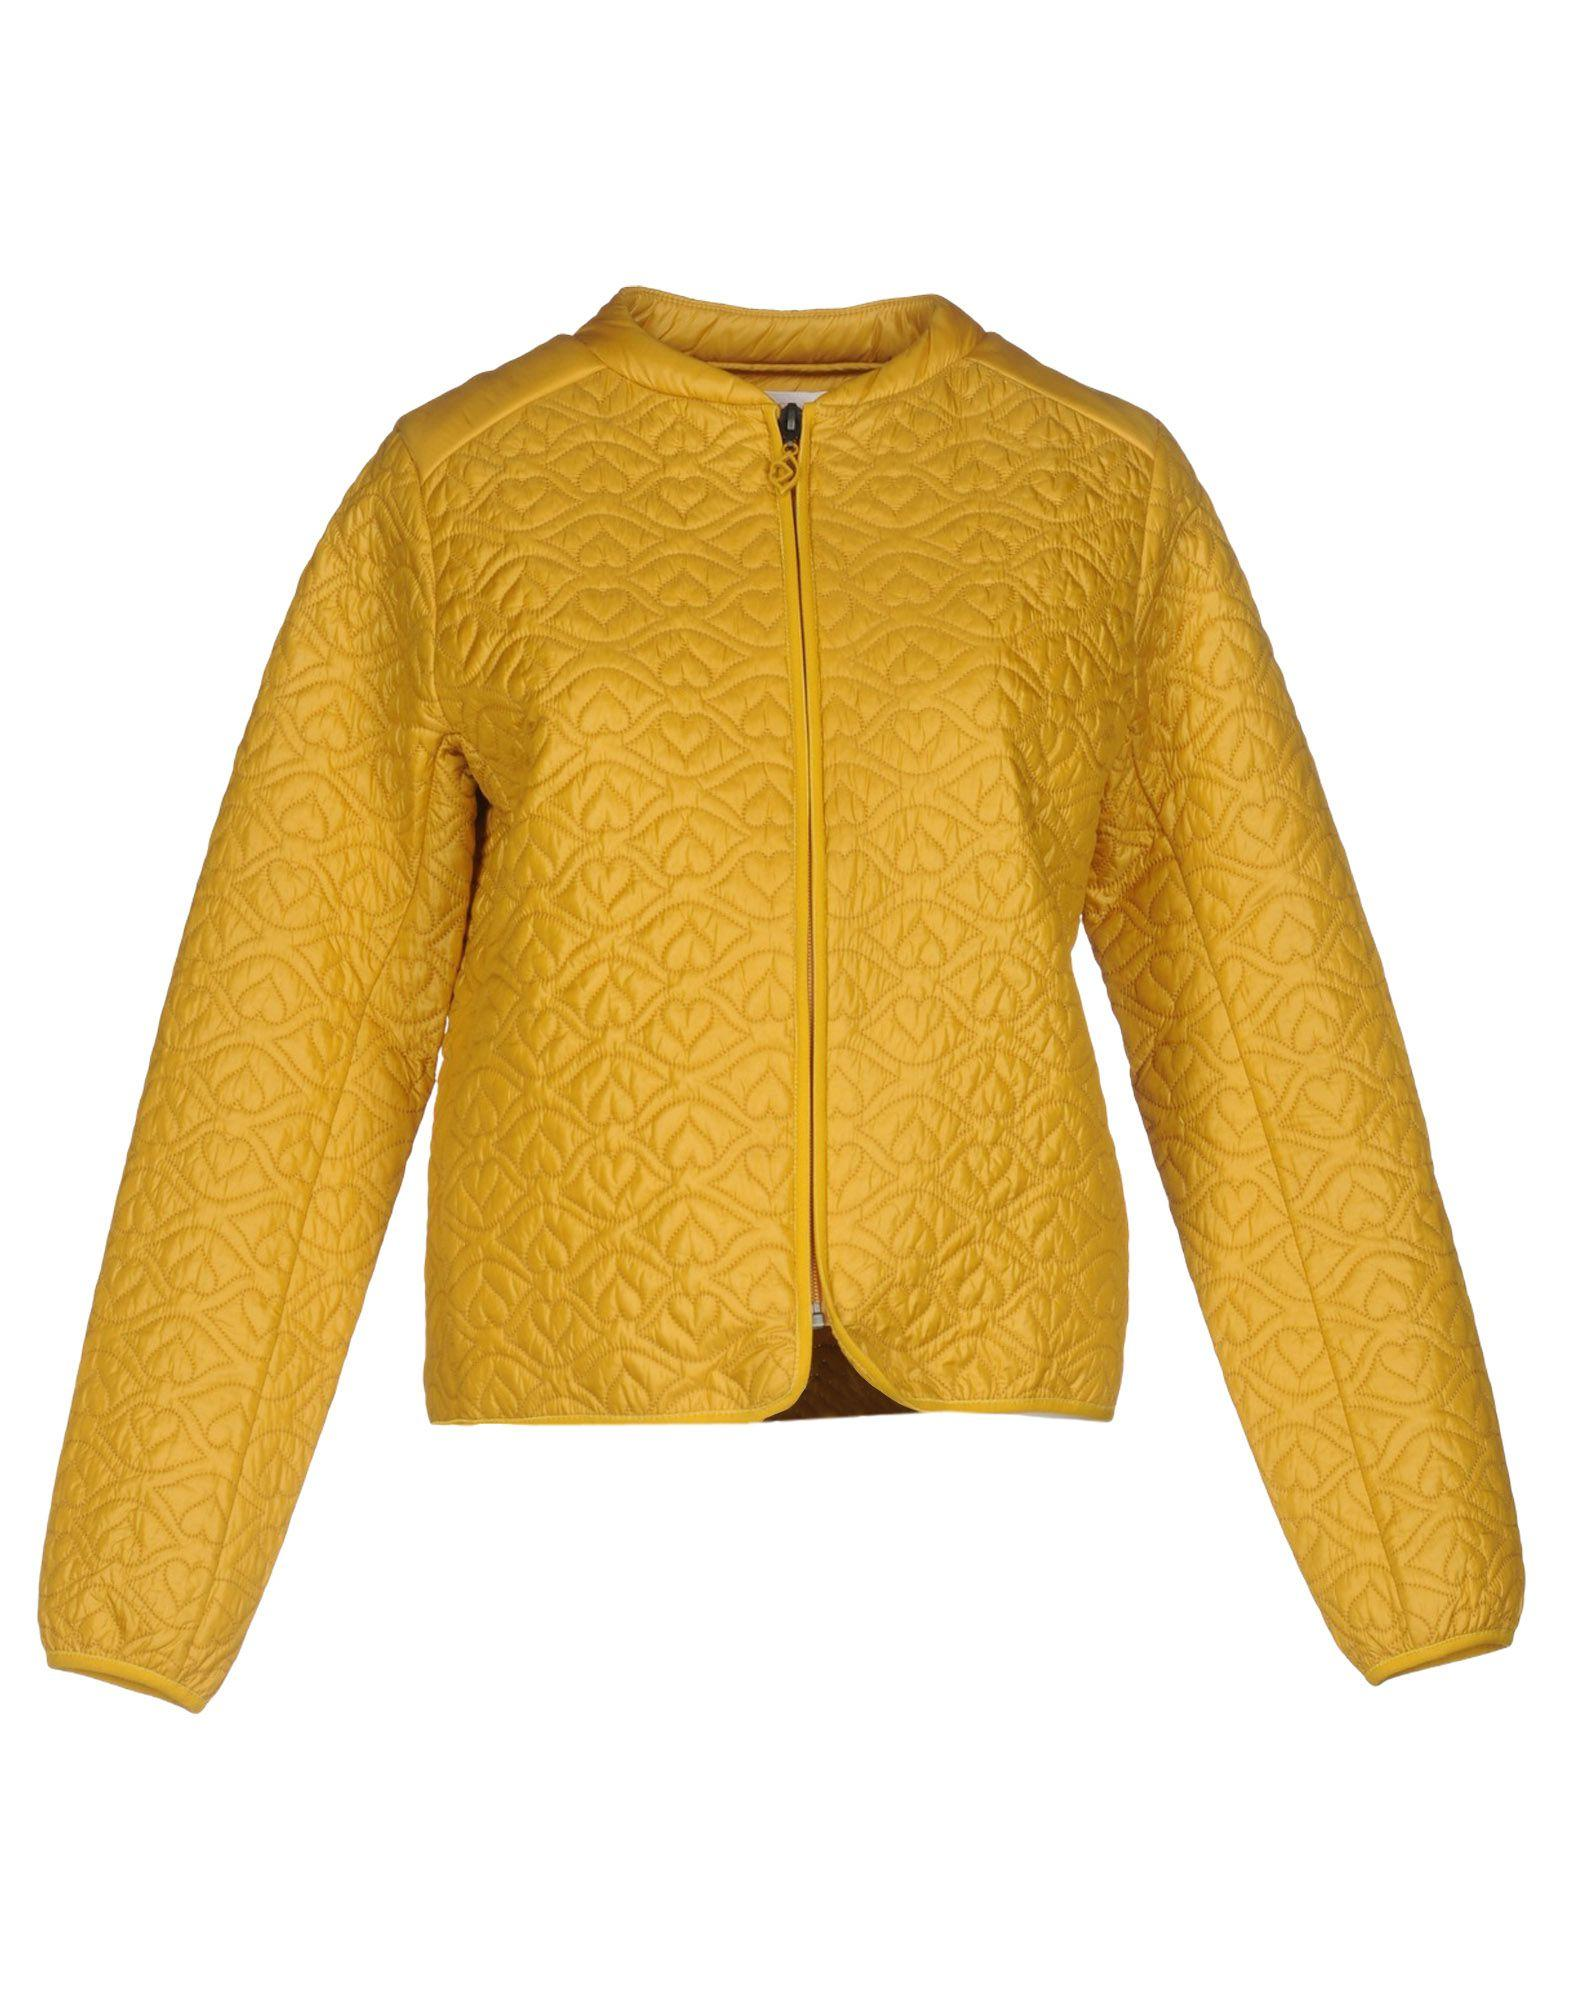 4d7647d46c Lyst - See By Chloé Jacket in Yellow